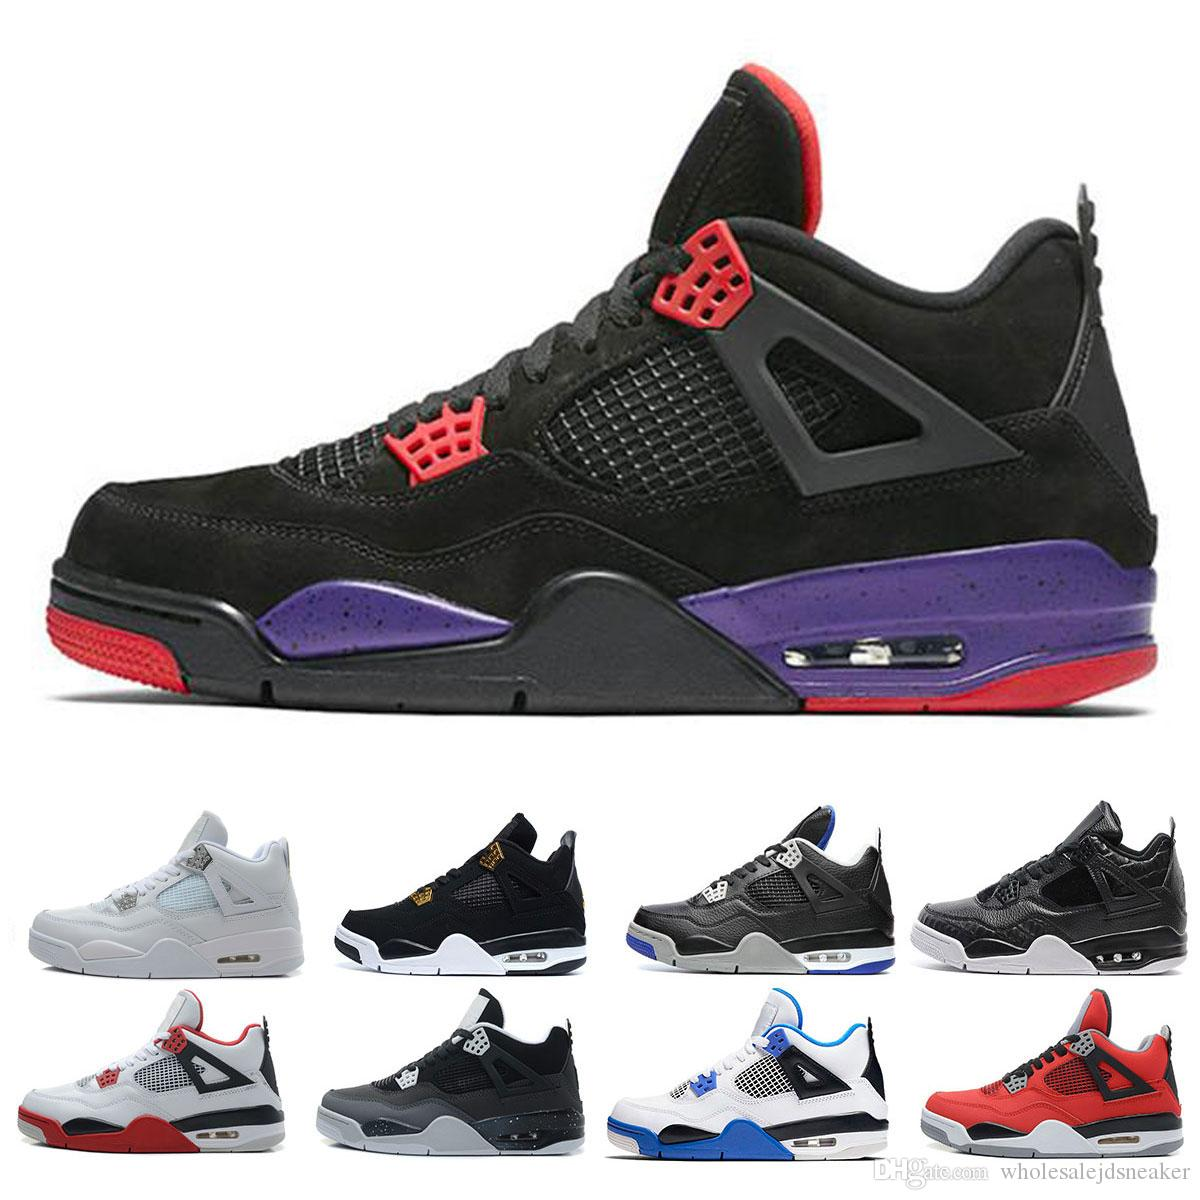 best loved 8f6ff 0378d Acquista Nike Air Jordan Retro 4 Shoes Travis Houston Blu 4 Raptors 4s Uomo  Scarpe Da Basket Puro Denaro Black Cat Cemento Bianco Bred Fire Red Fear  Scarpe ...